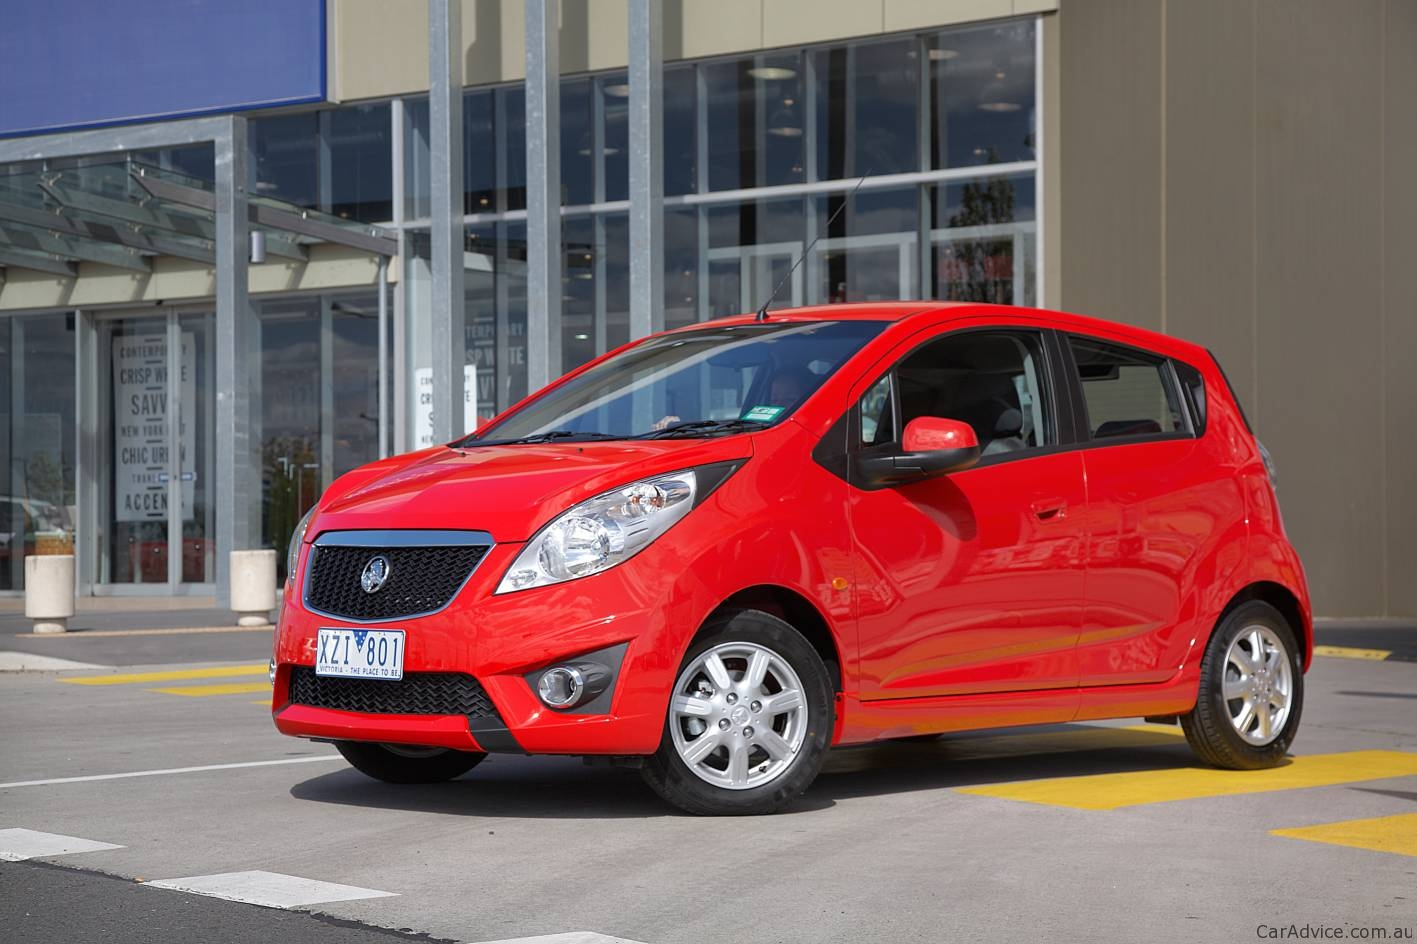 Chery J11 Now 17 990 Drive Away But What Else Could You